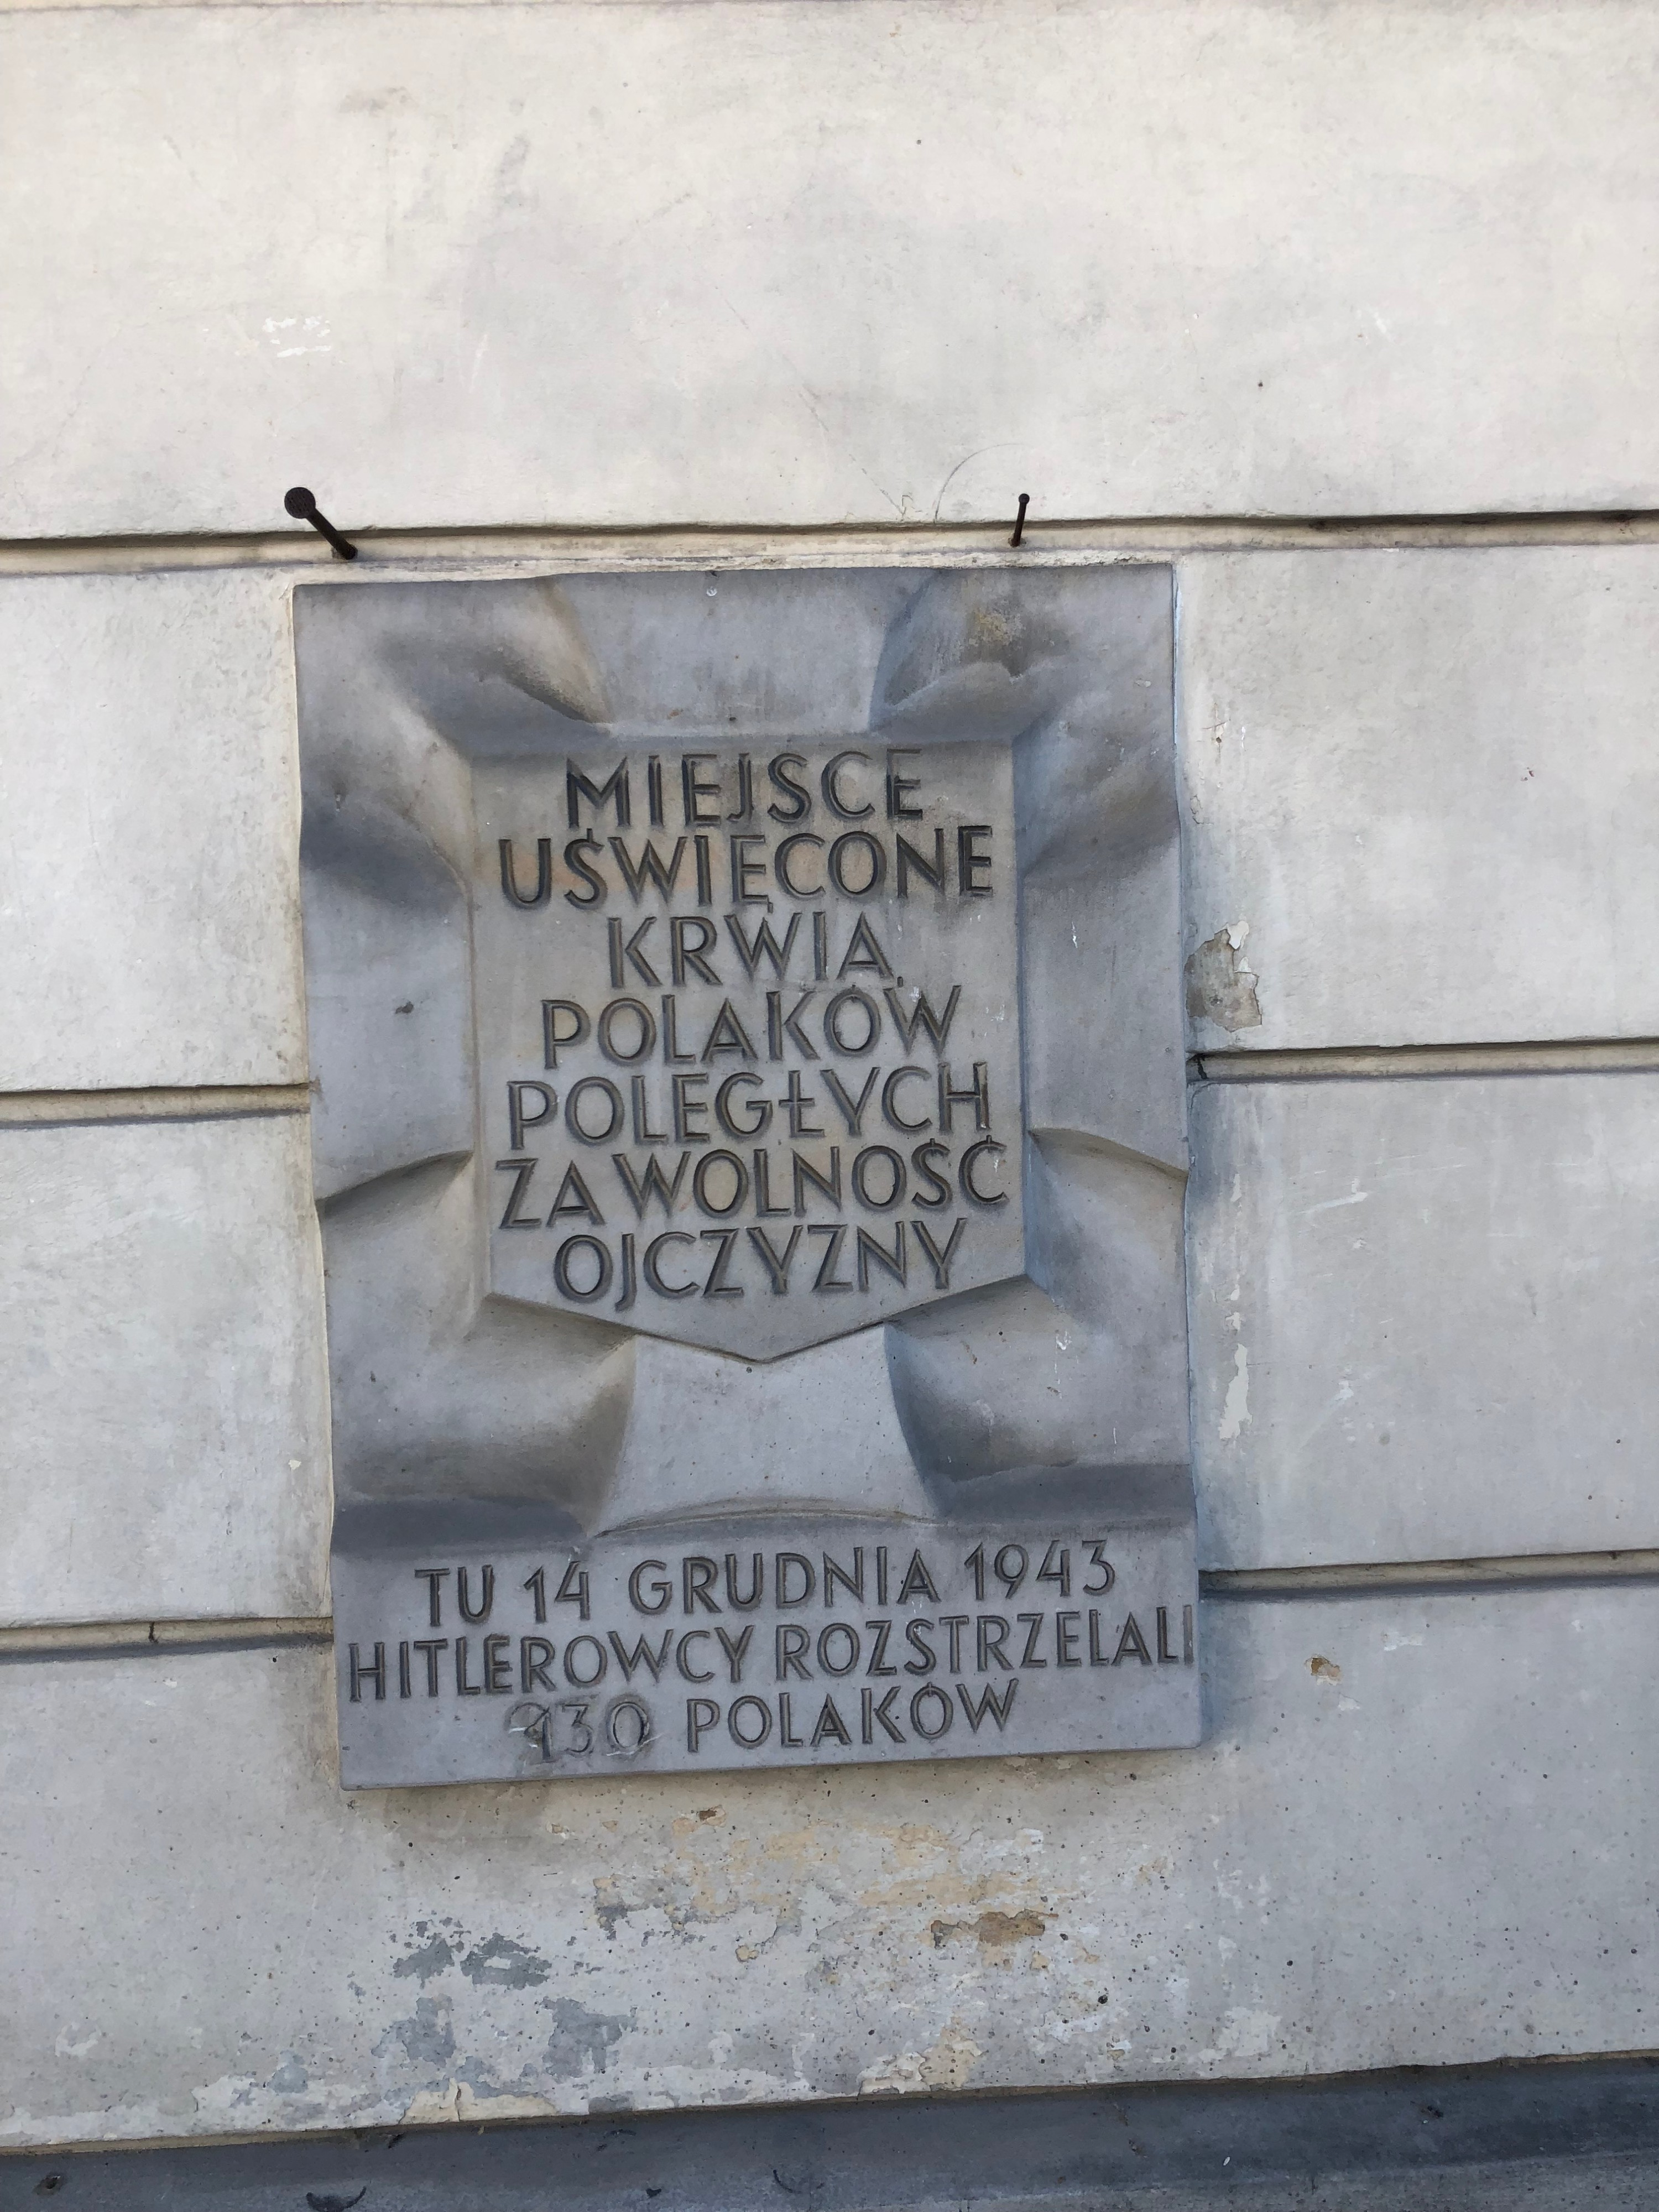 Across the city there are placards that mark the spot where a large number of Poles were shot dead by the Nazis